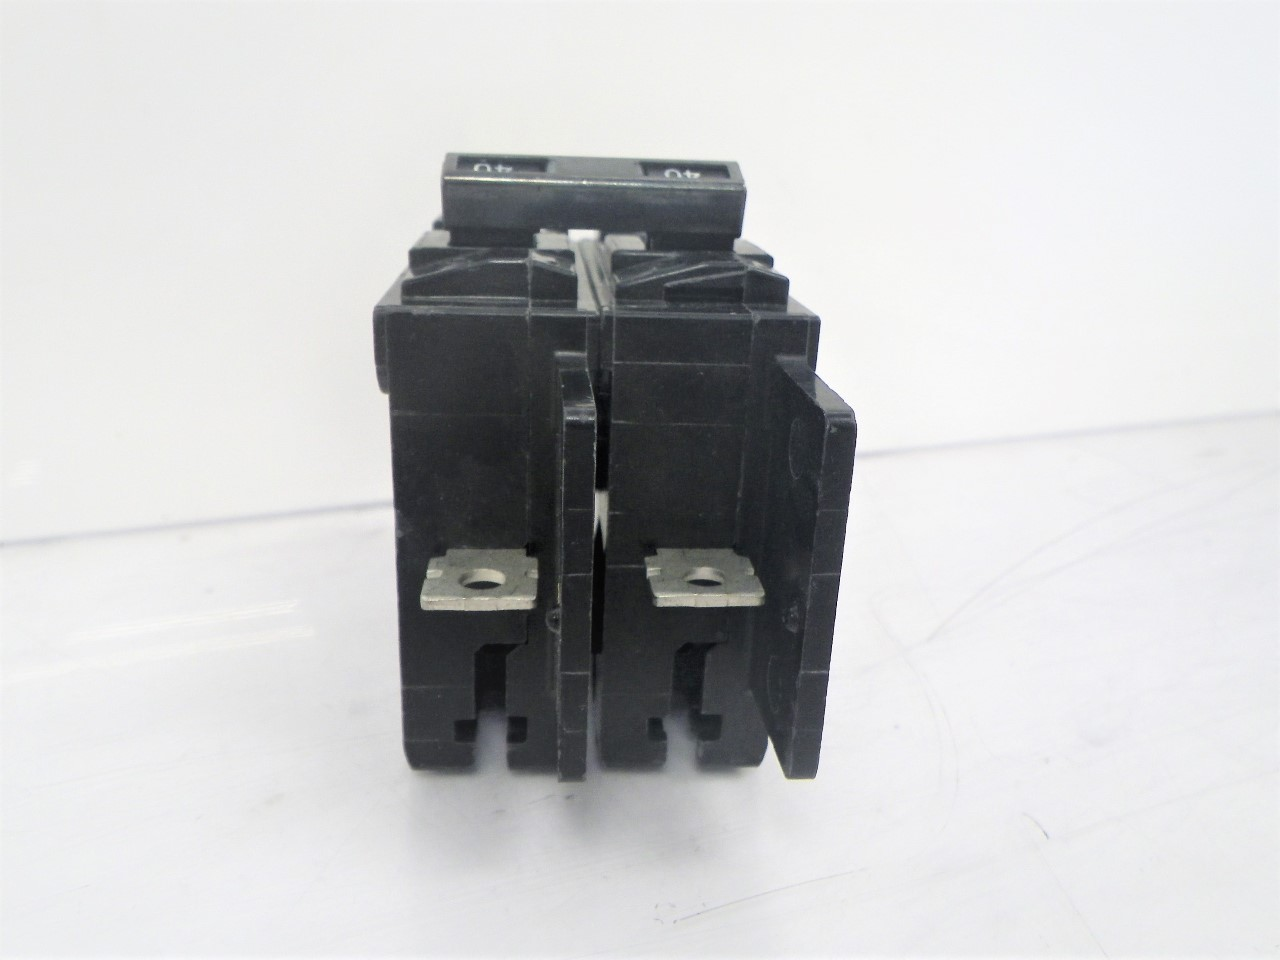 BQ2B040 Siemens Circuit Breaker 40A 120240V 2-Pole (NEW) (6)